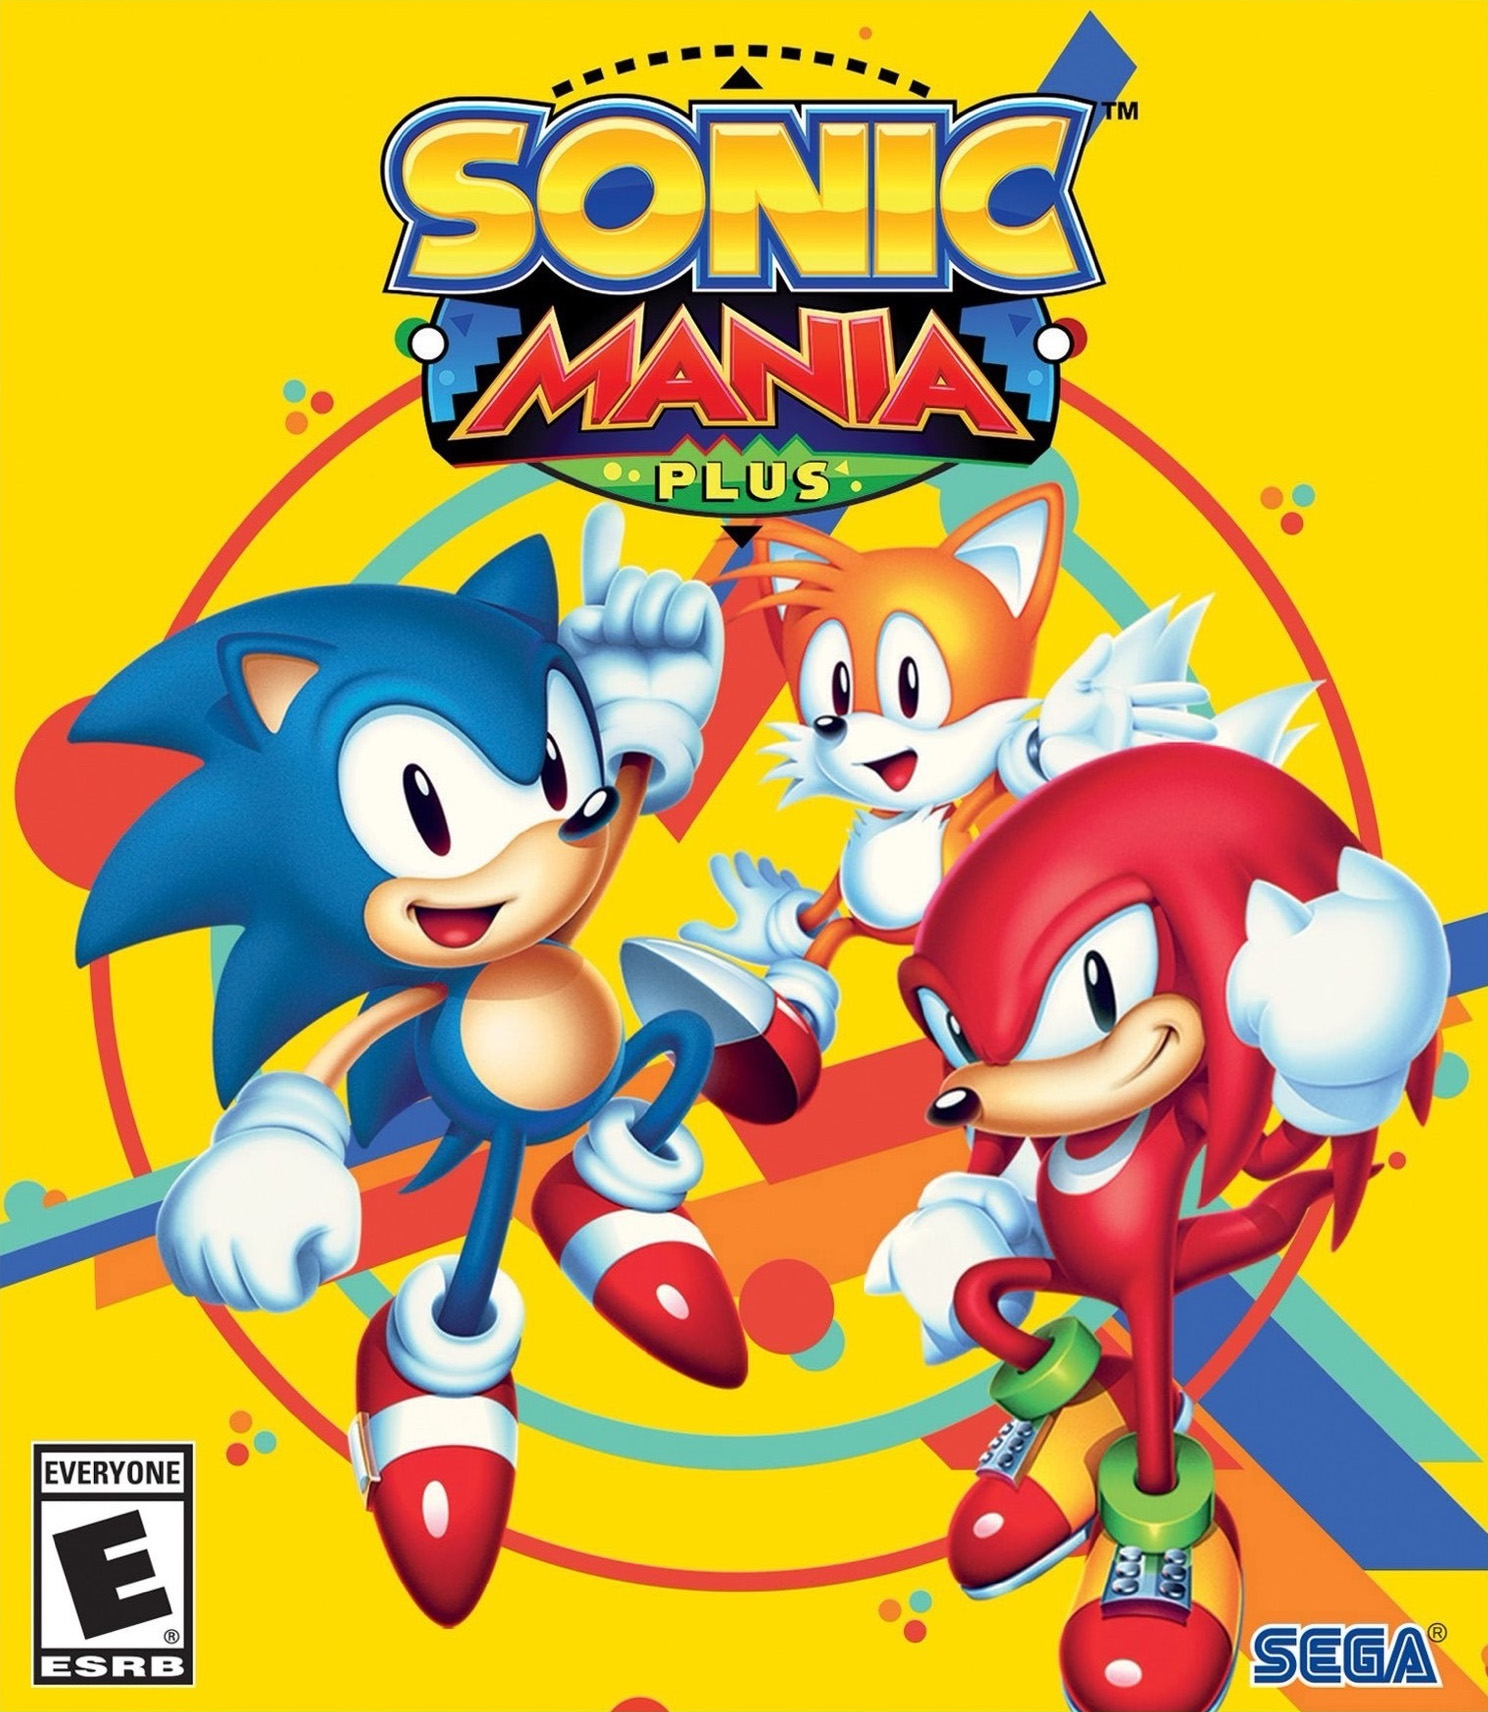 'Sonic Mania Plus' somehow manages to drastically improve upon a masterpiece